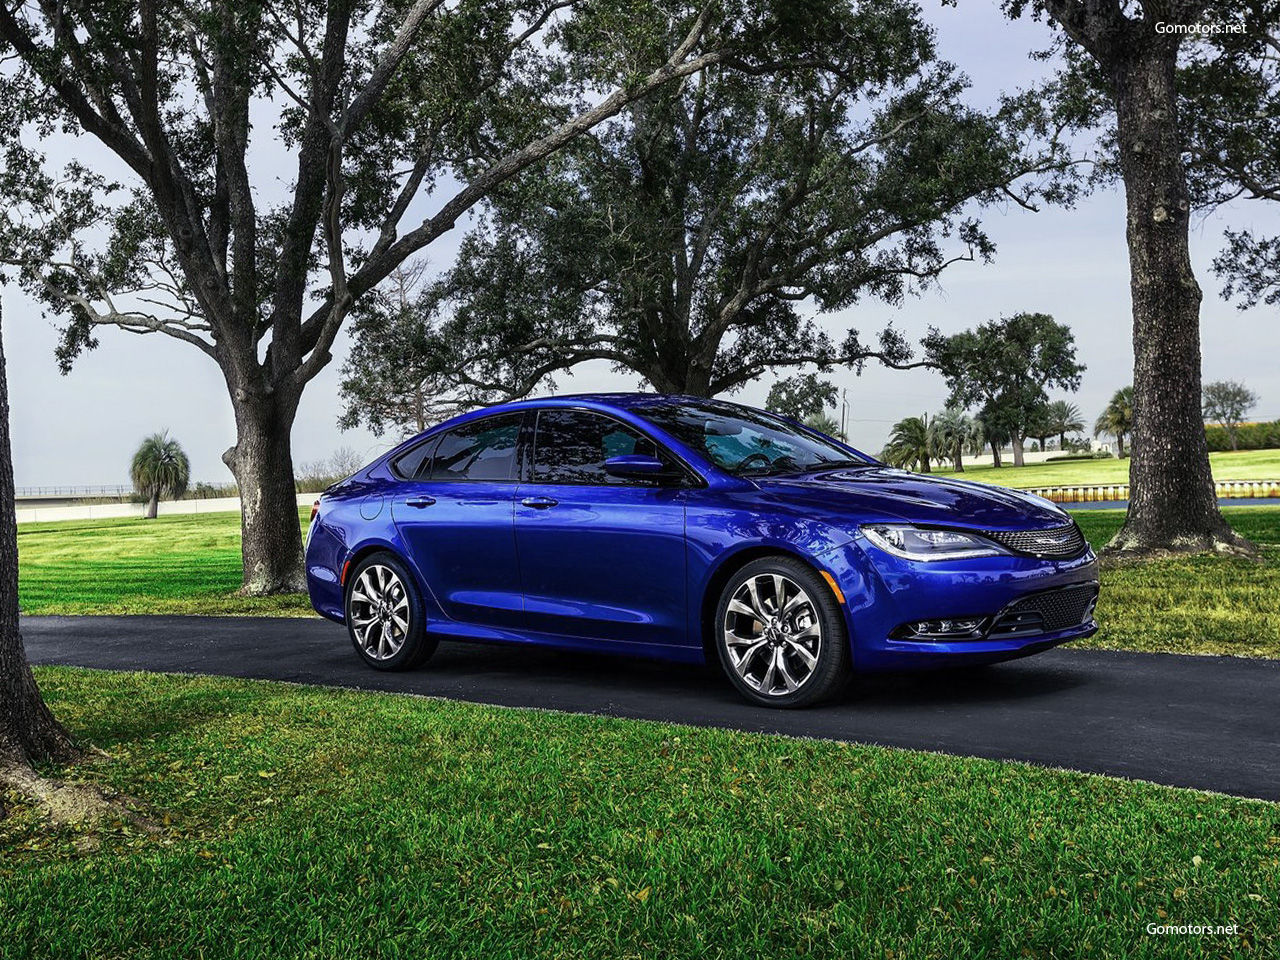 2015 chrysler 200 interior photos reviews news specs buy car. Black Bedroom Furniture Sets. Home Design Ideas